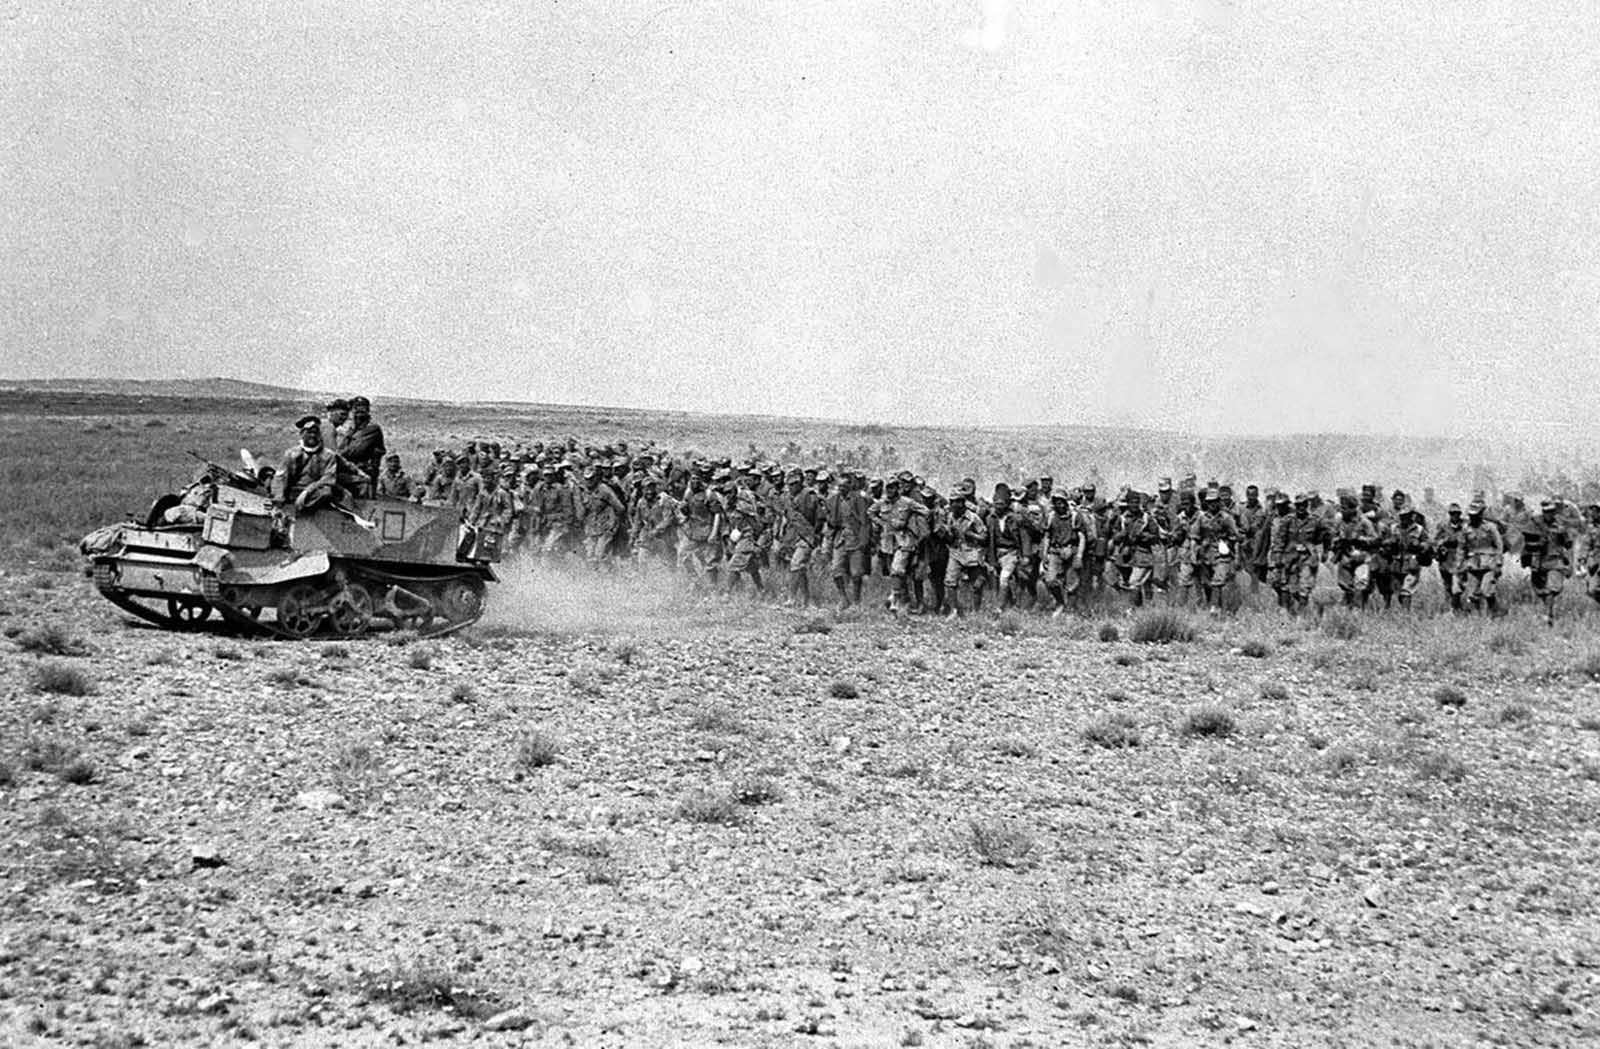 Two thousand Italian prisoners march back through Eighth Army lines, led by a Bren gun carrier, in the Tunisian desert, in March 1943. The prisoners were taken outside El-Hamma after their German counterparts pulled out of the town.